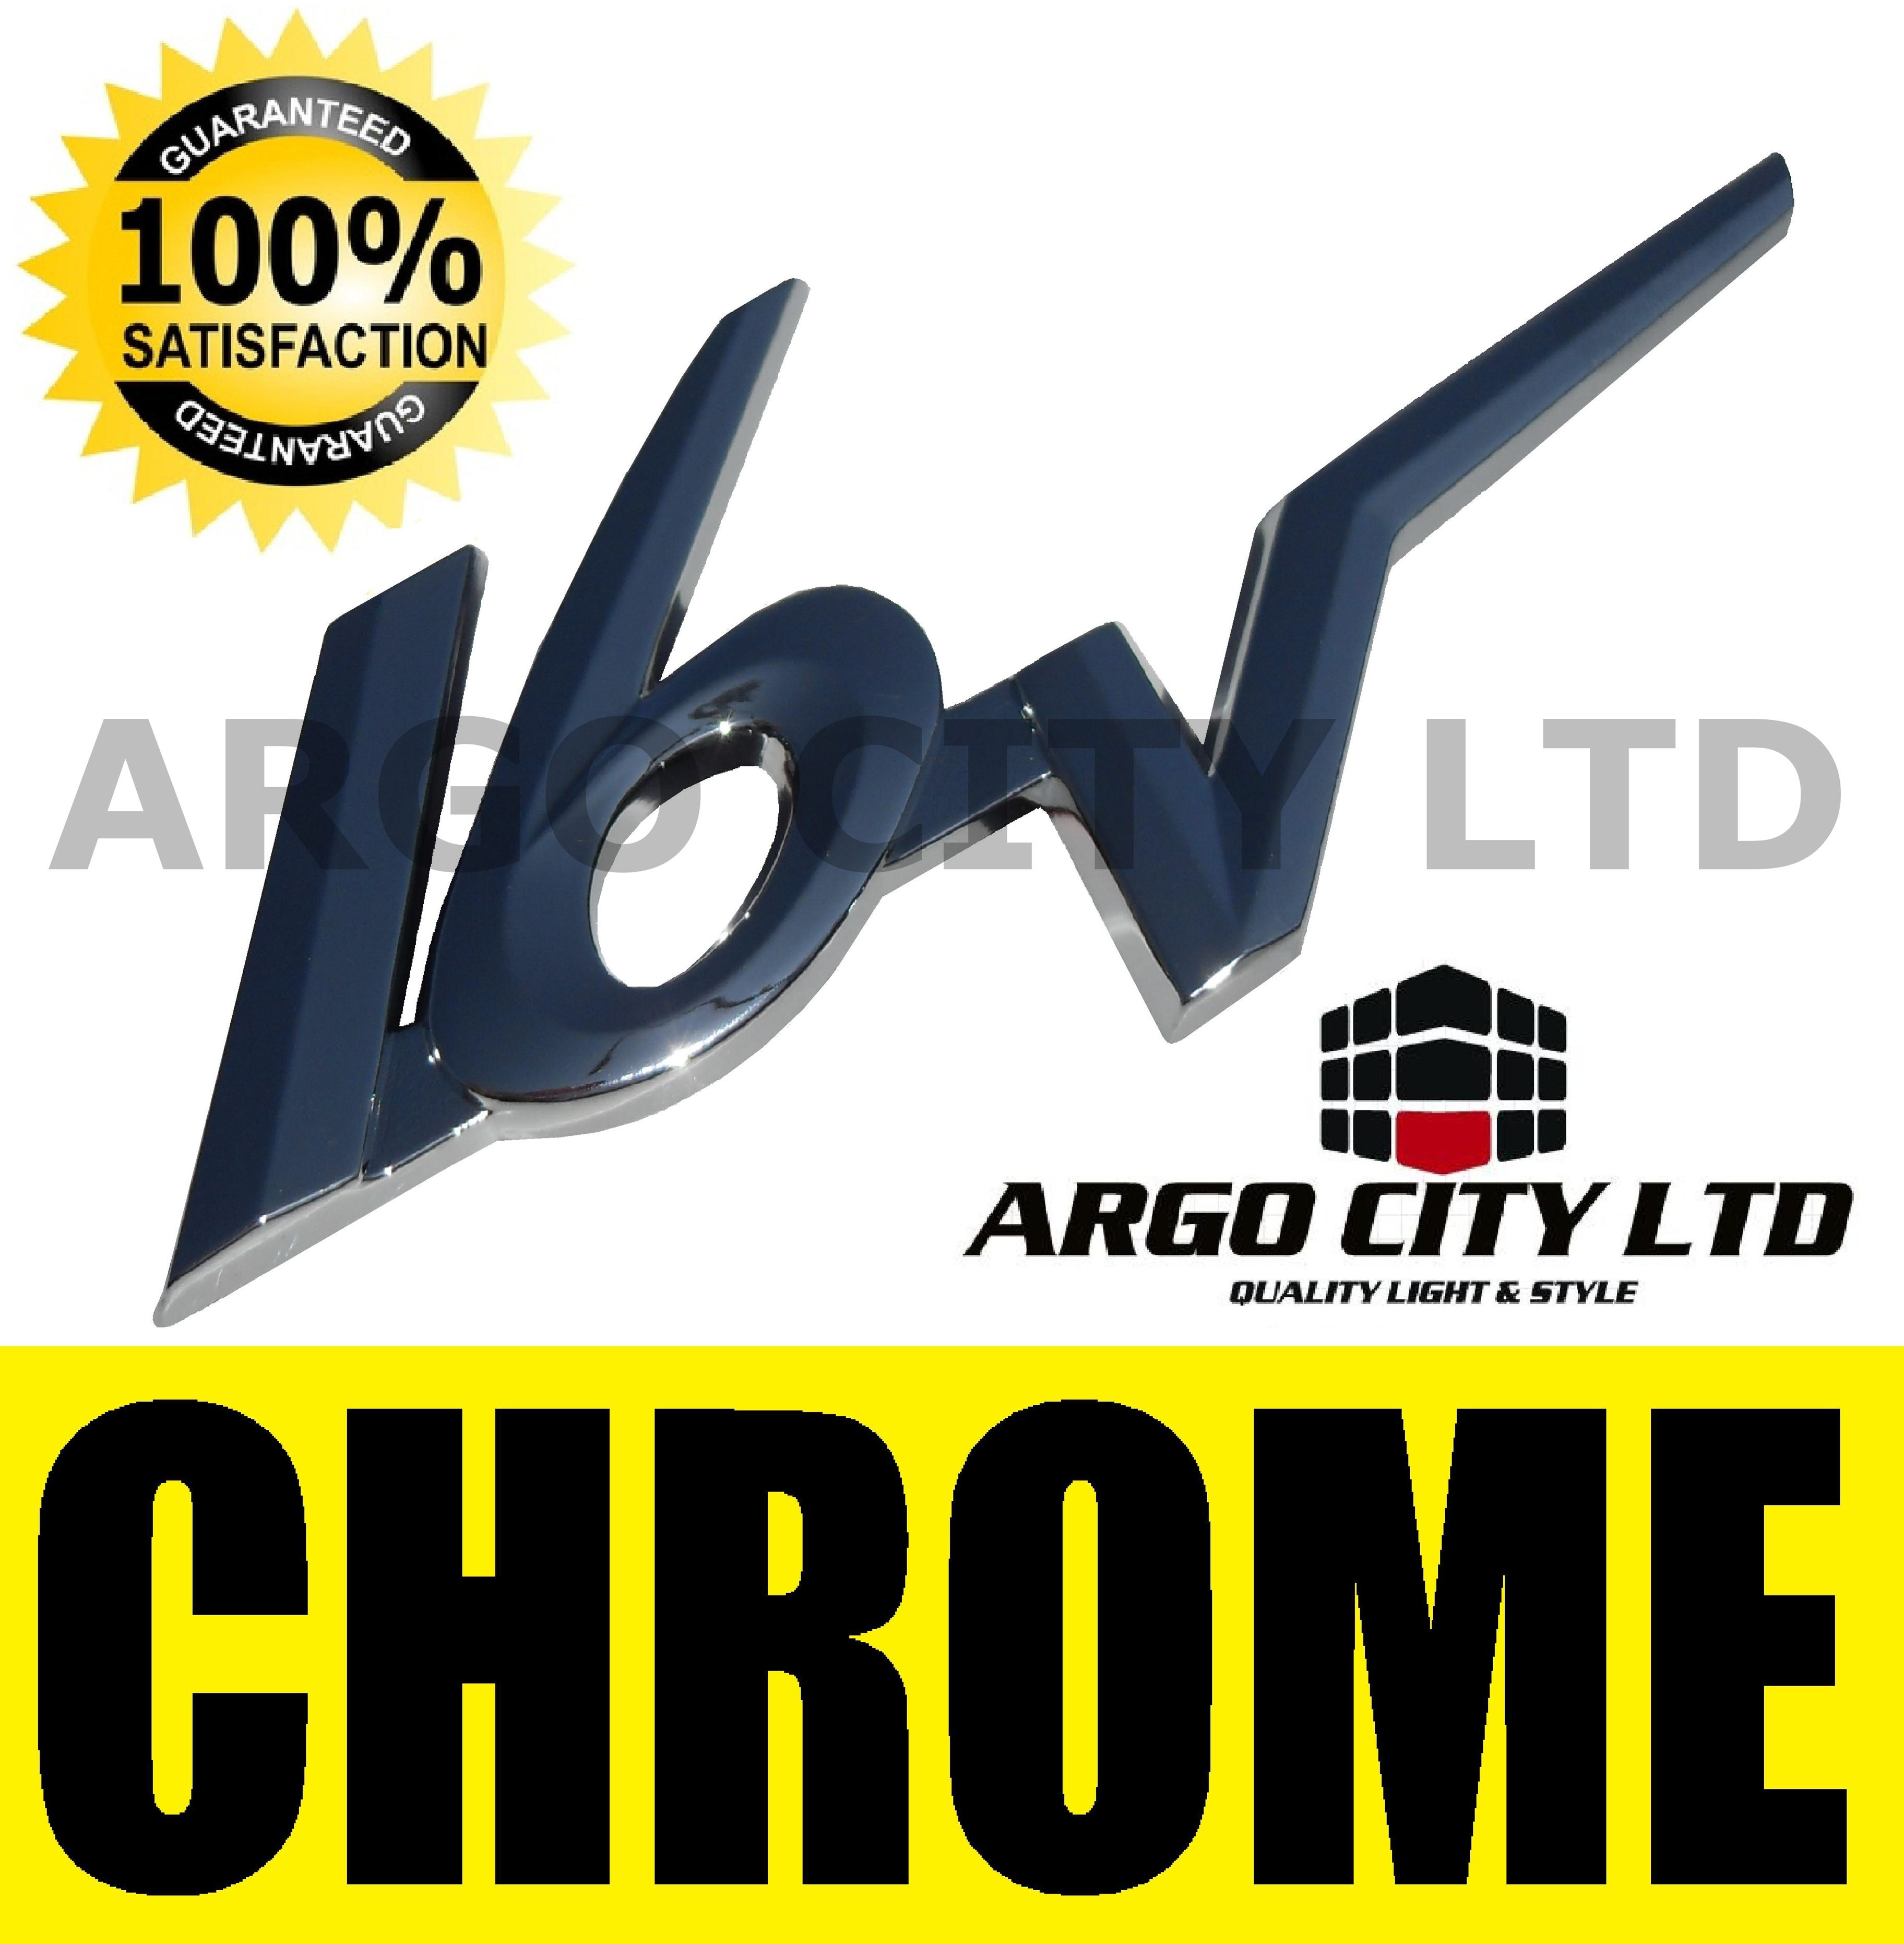 CHROME 16V BADGE SILVER 3D EMBLEM DECAL STICKER VAUXHALL ASTRA CONVERTIBLE